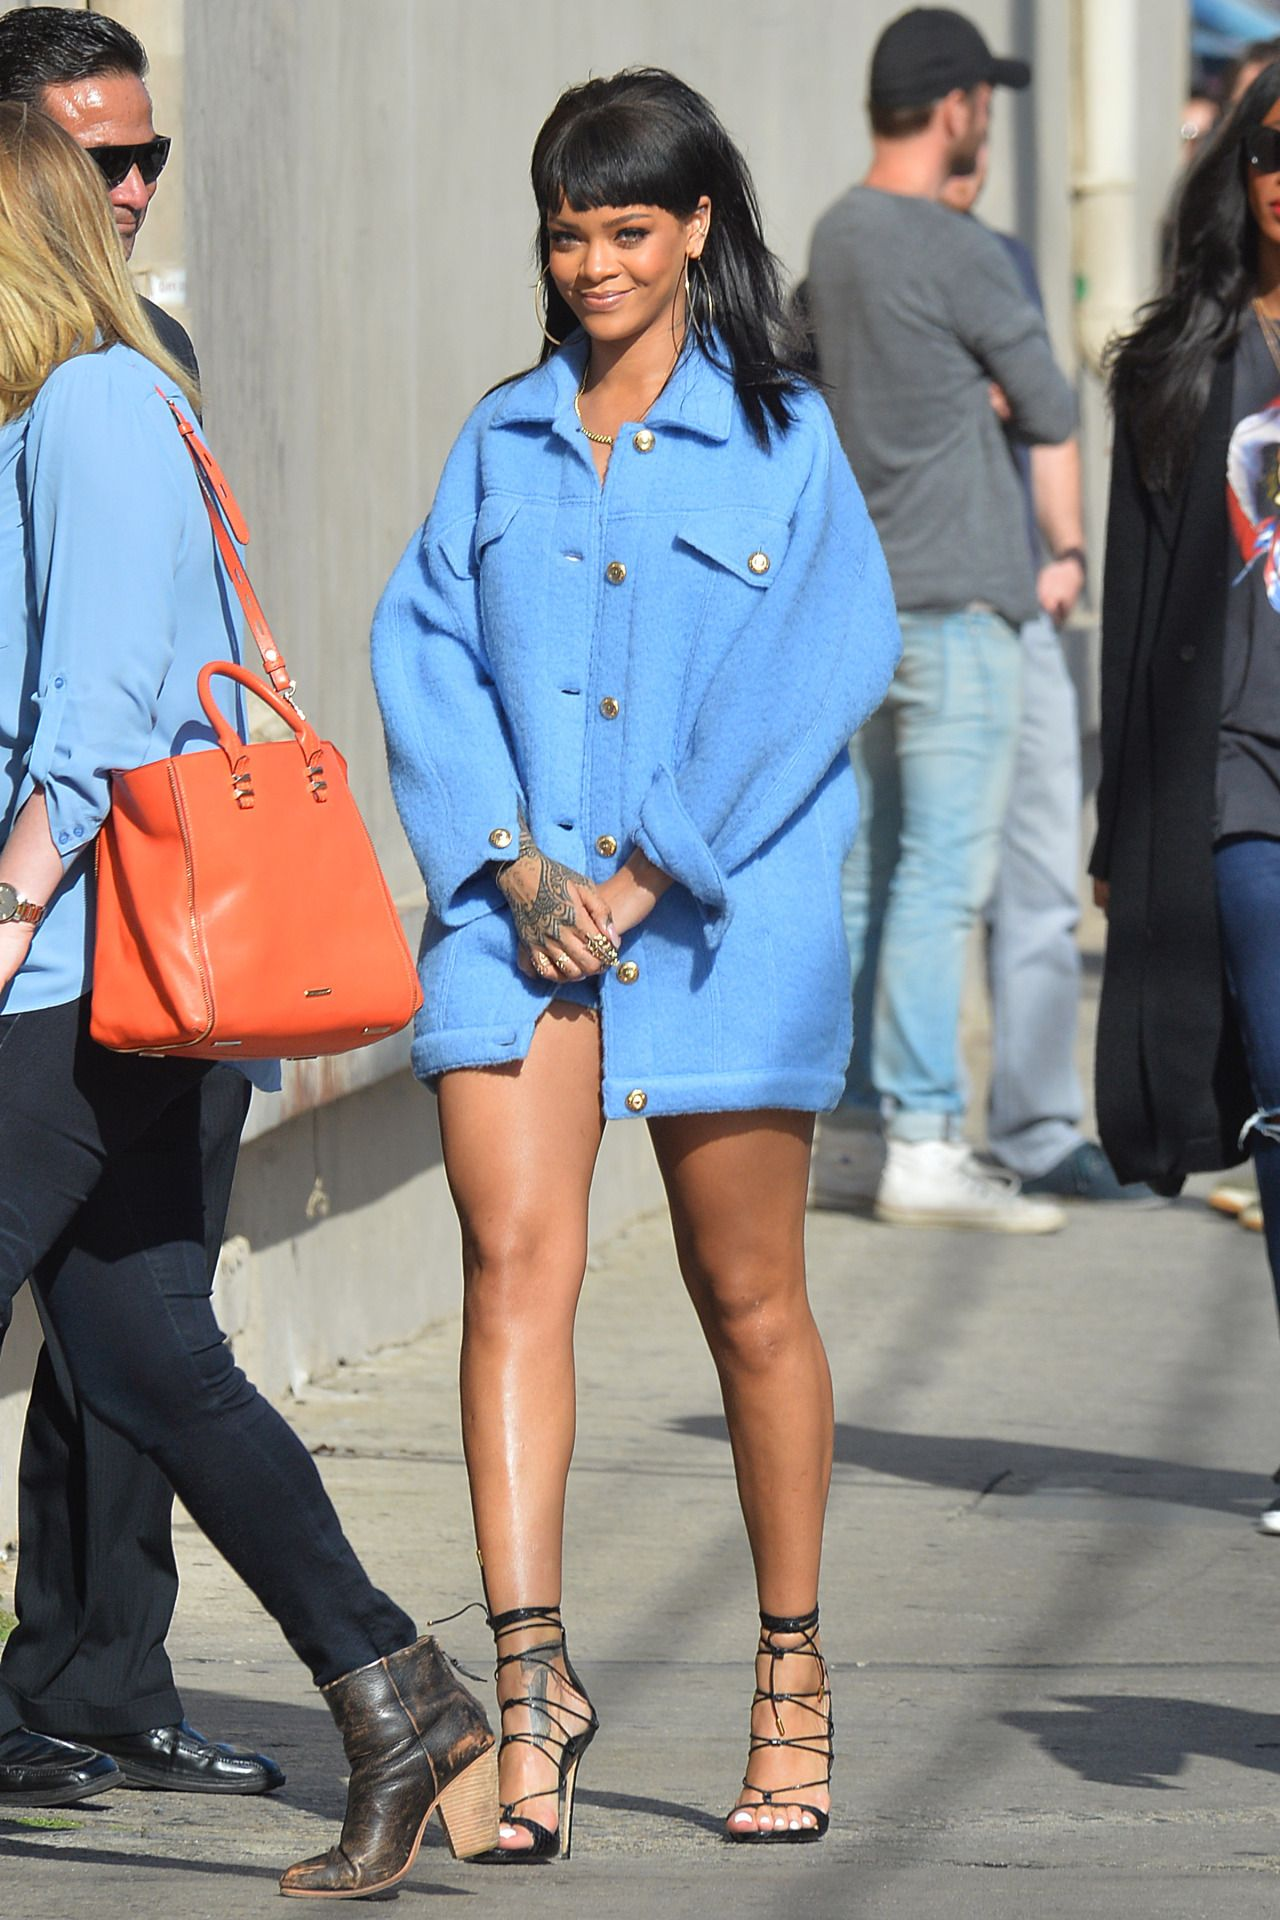 Rihanna Street Style Tumblr Images Galleries With A Bite